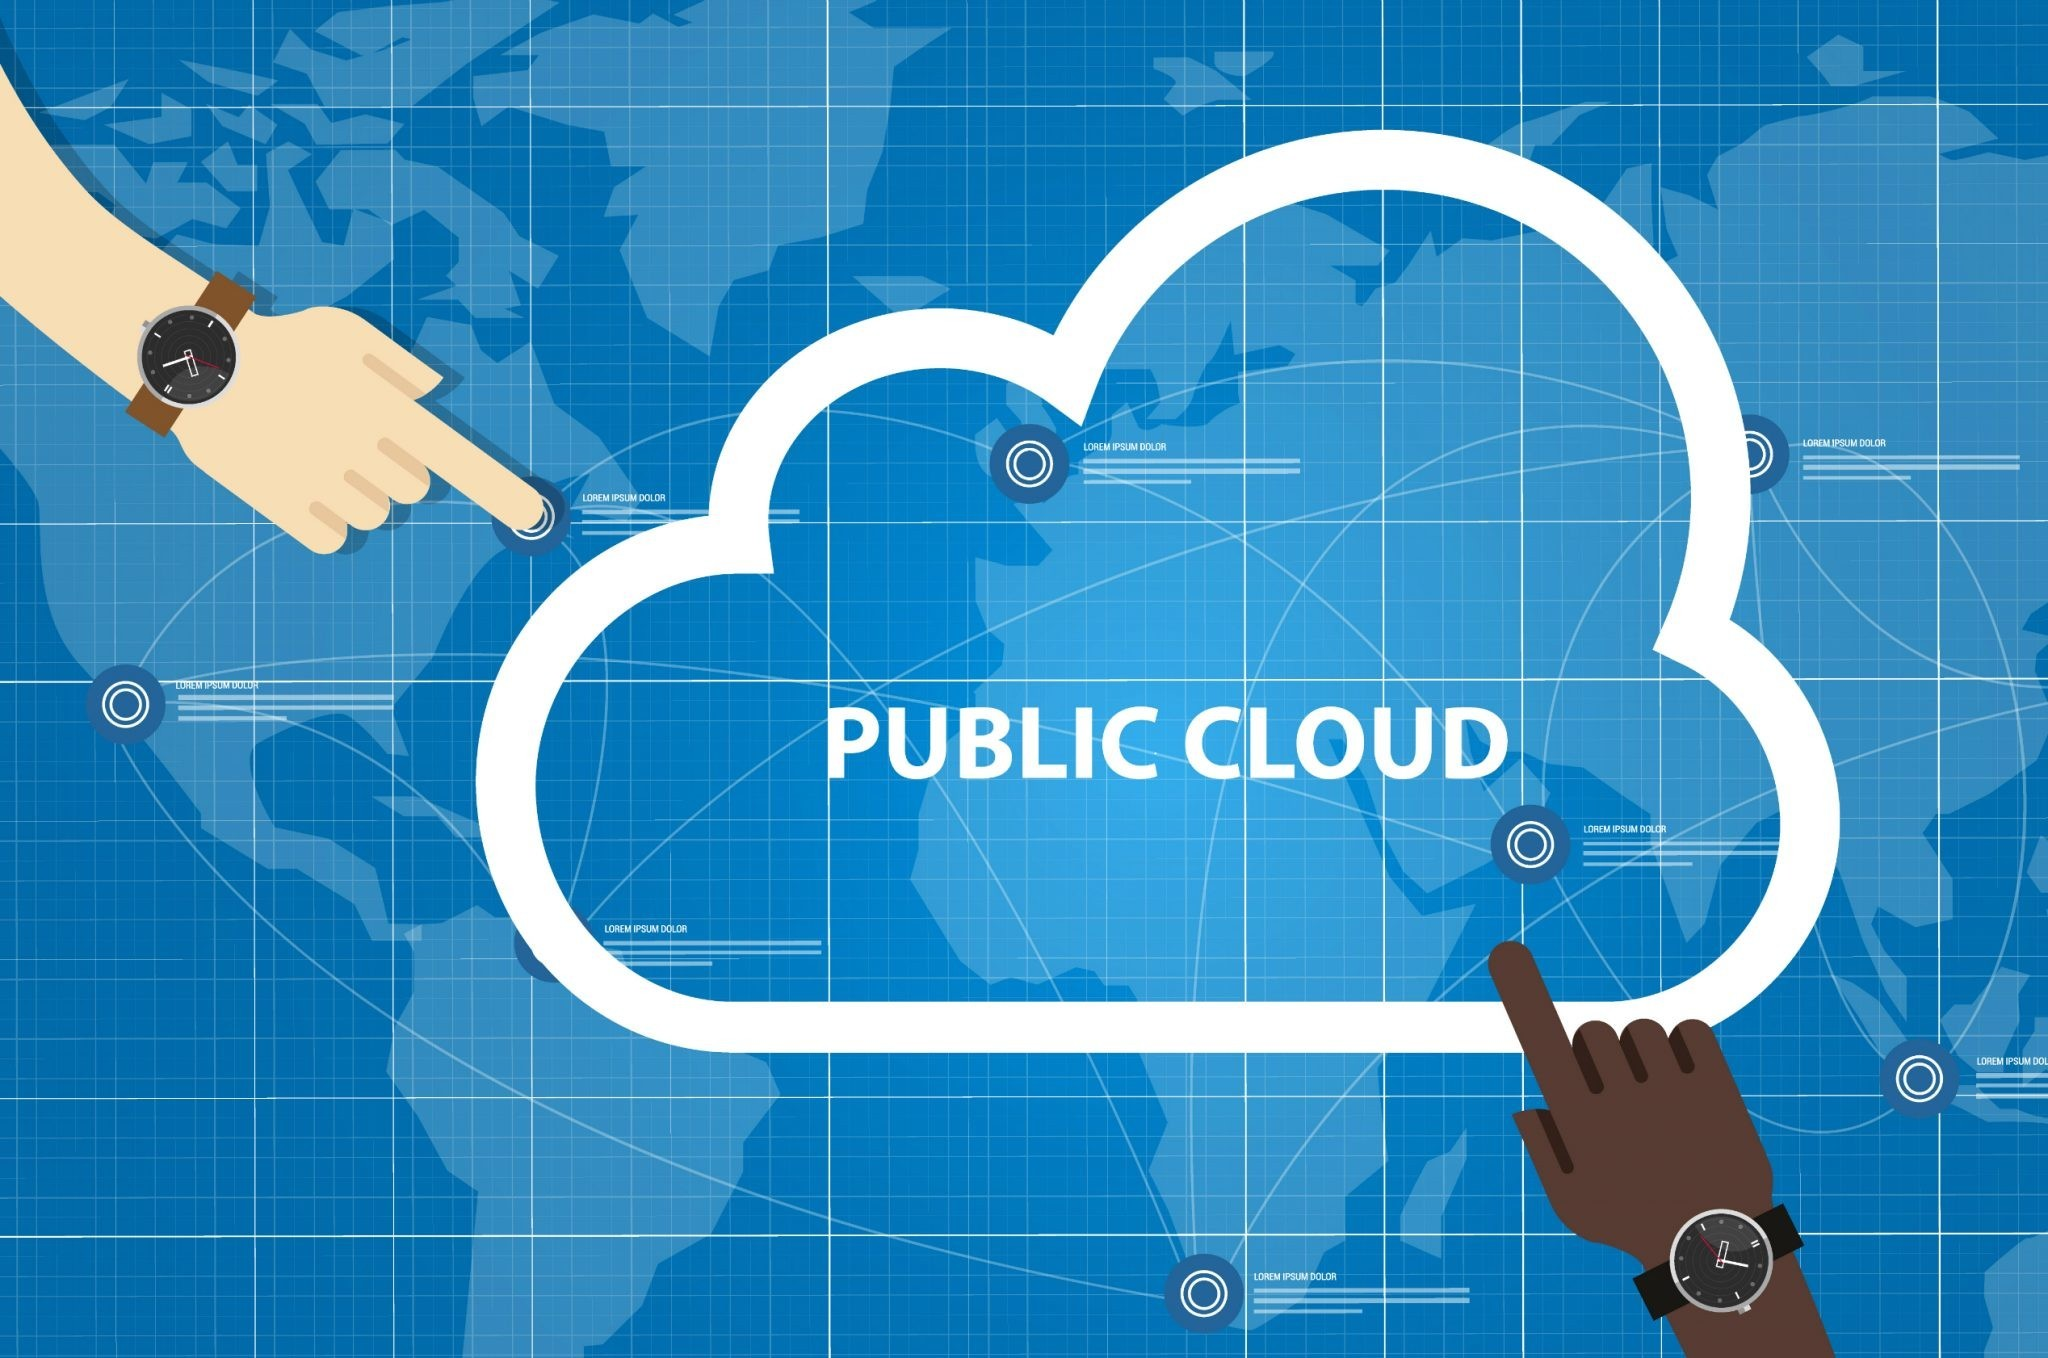 Learn more about Public Cloud